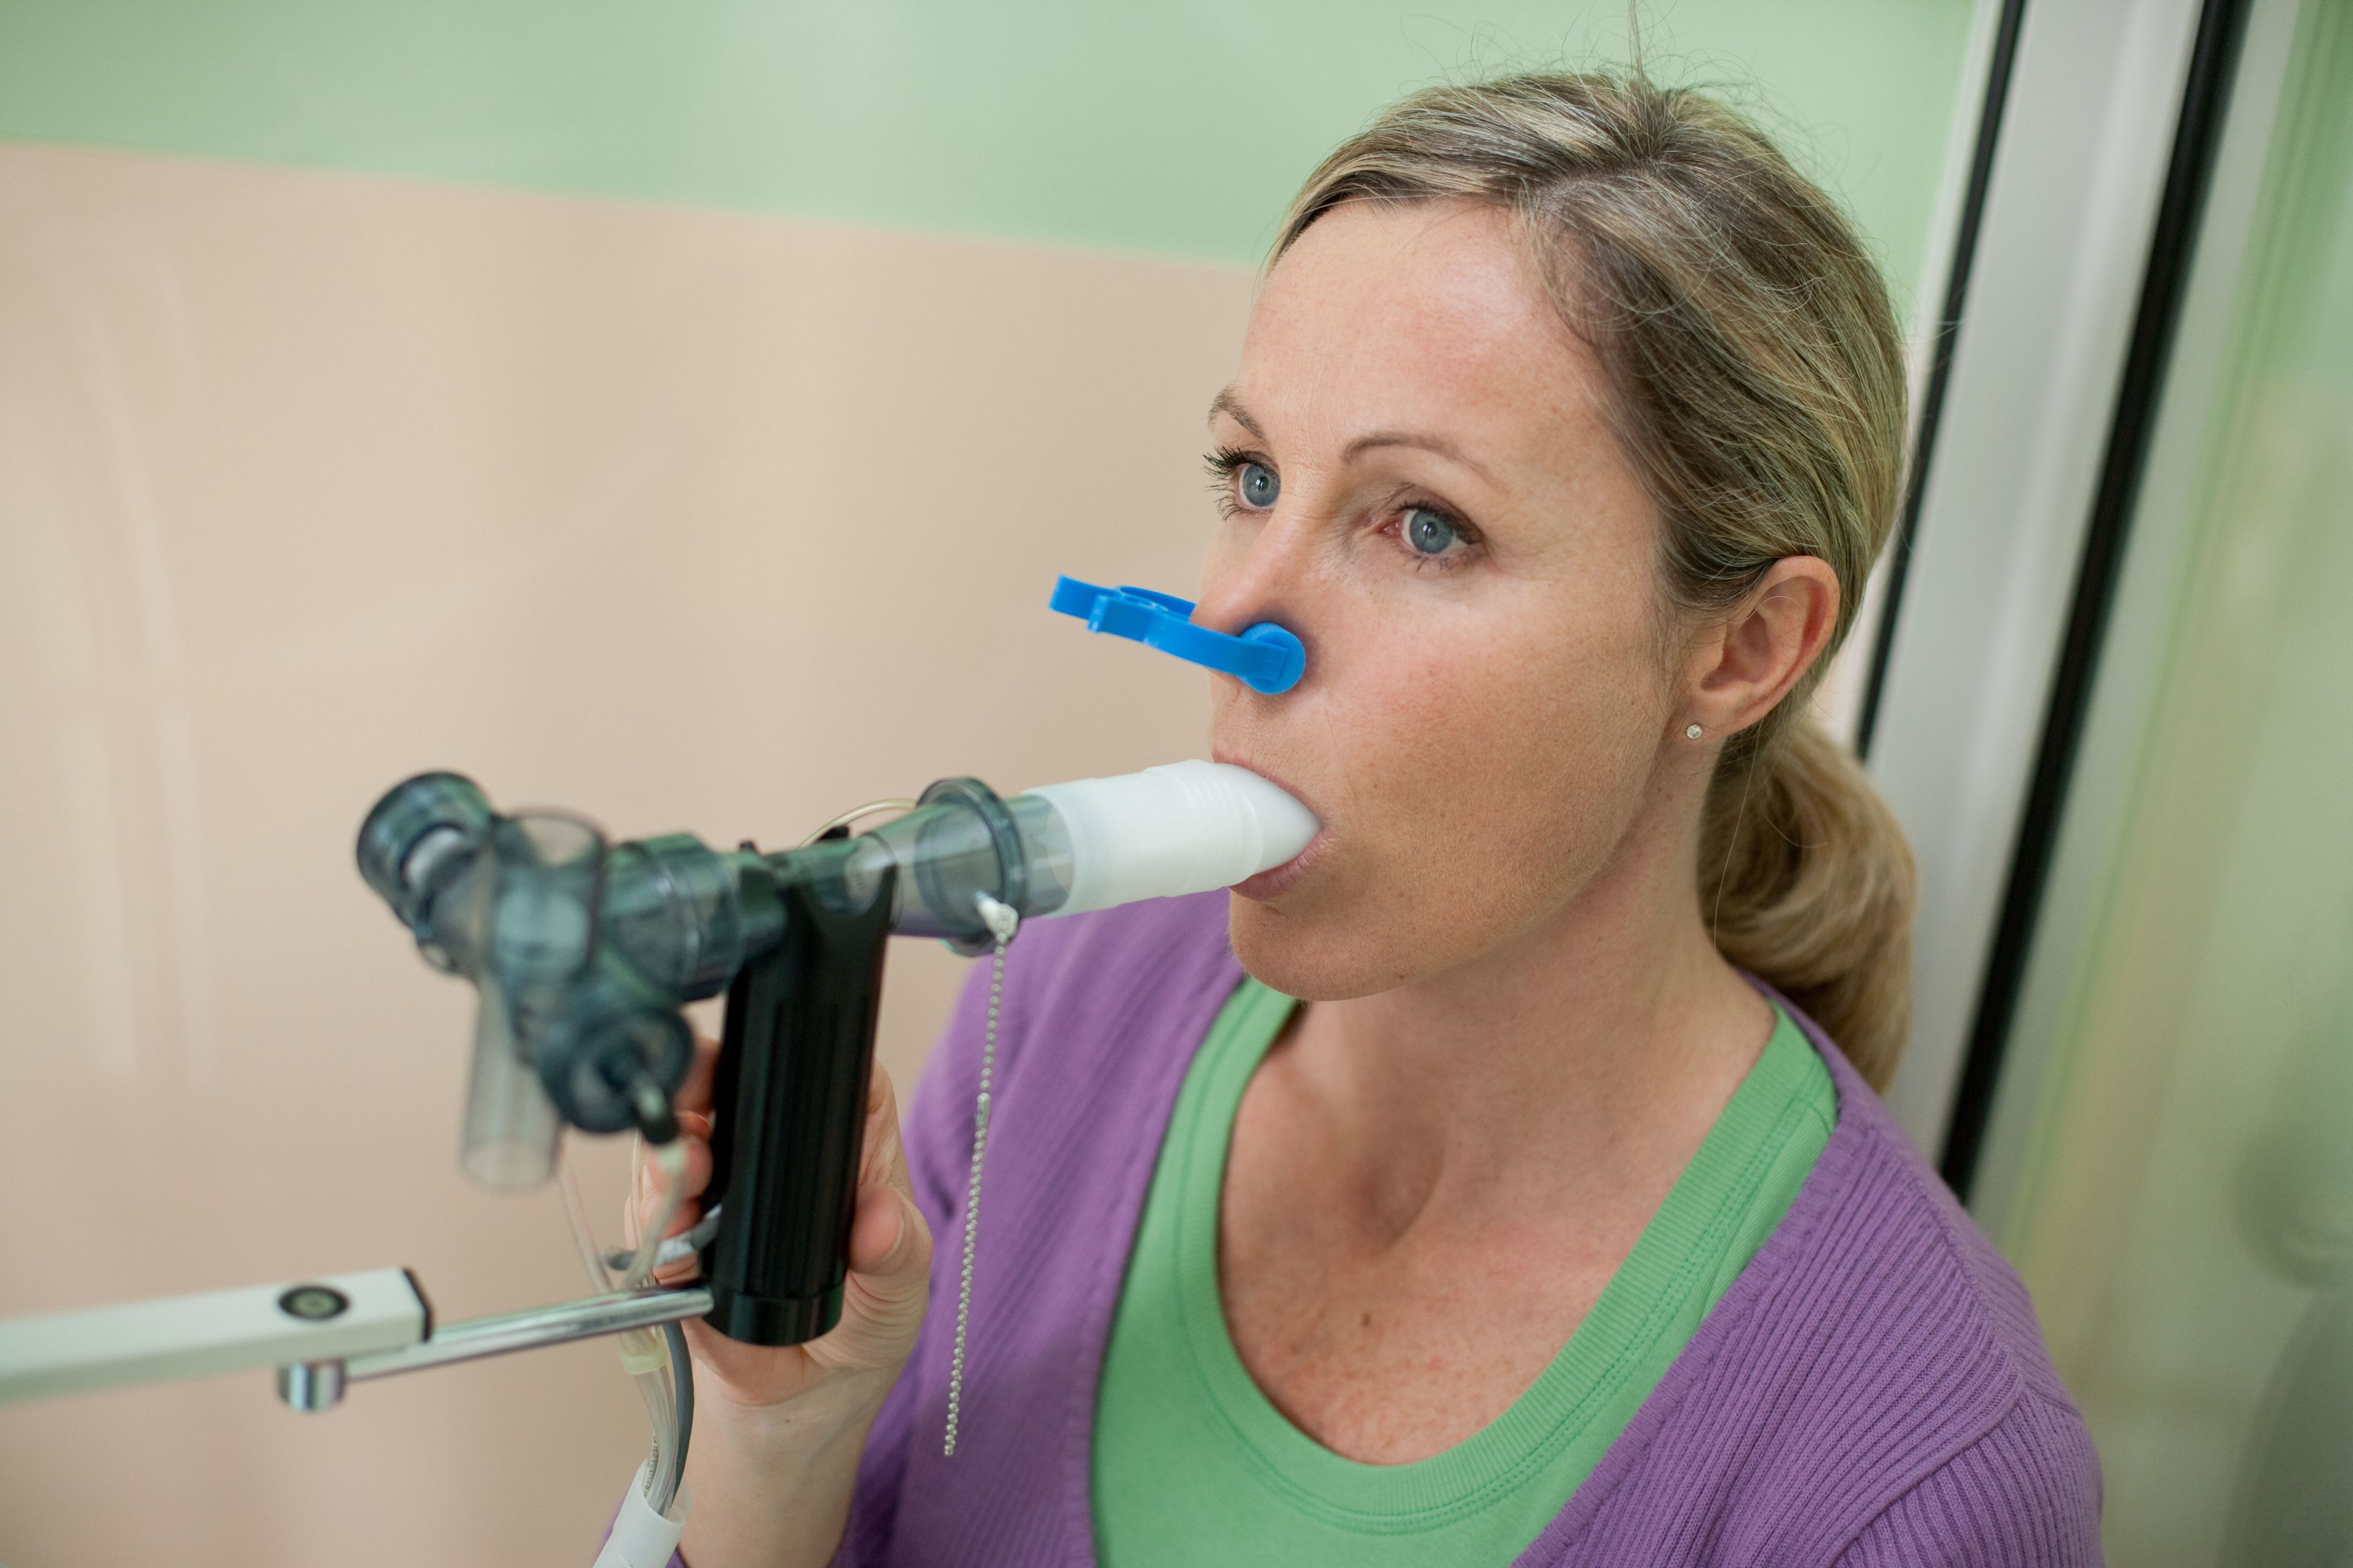 spirometry Overview spirometry (spy-rom-uh-tree) is a common office test used to assess how well your lungs work by measuring how much air you inhale, how much you exhale and how quickly you exhale.